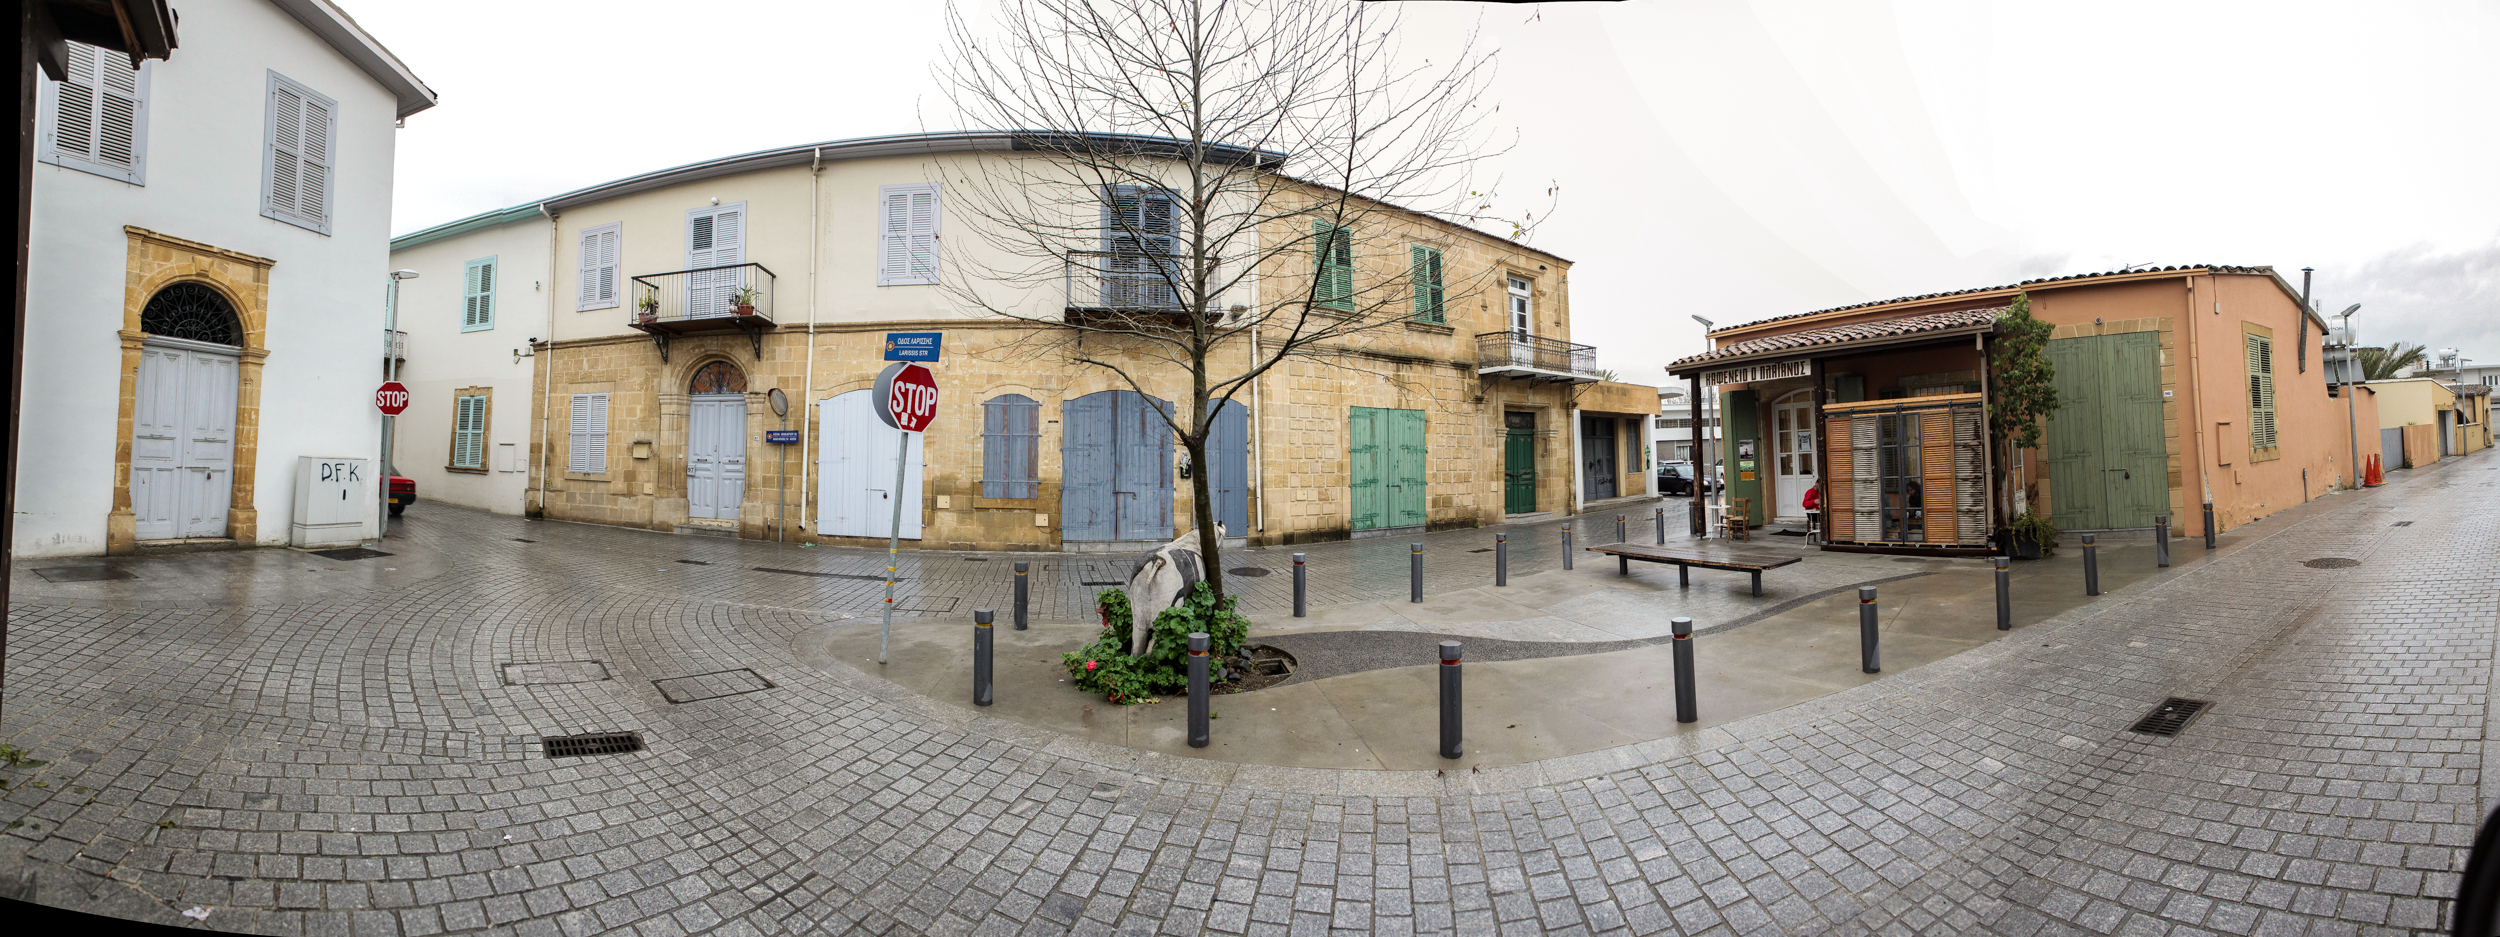 A panorama of the square where the proposal would be placed